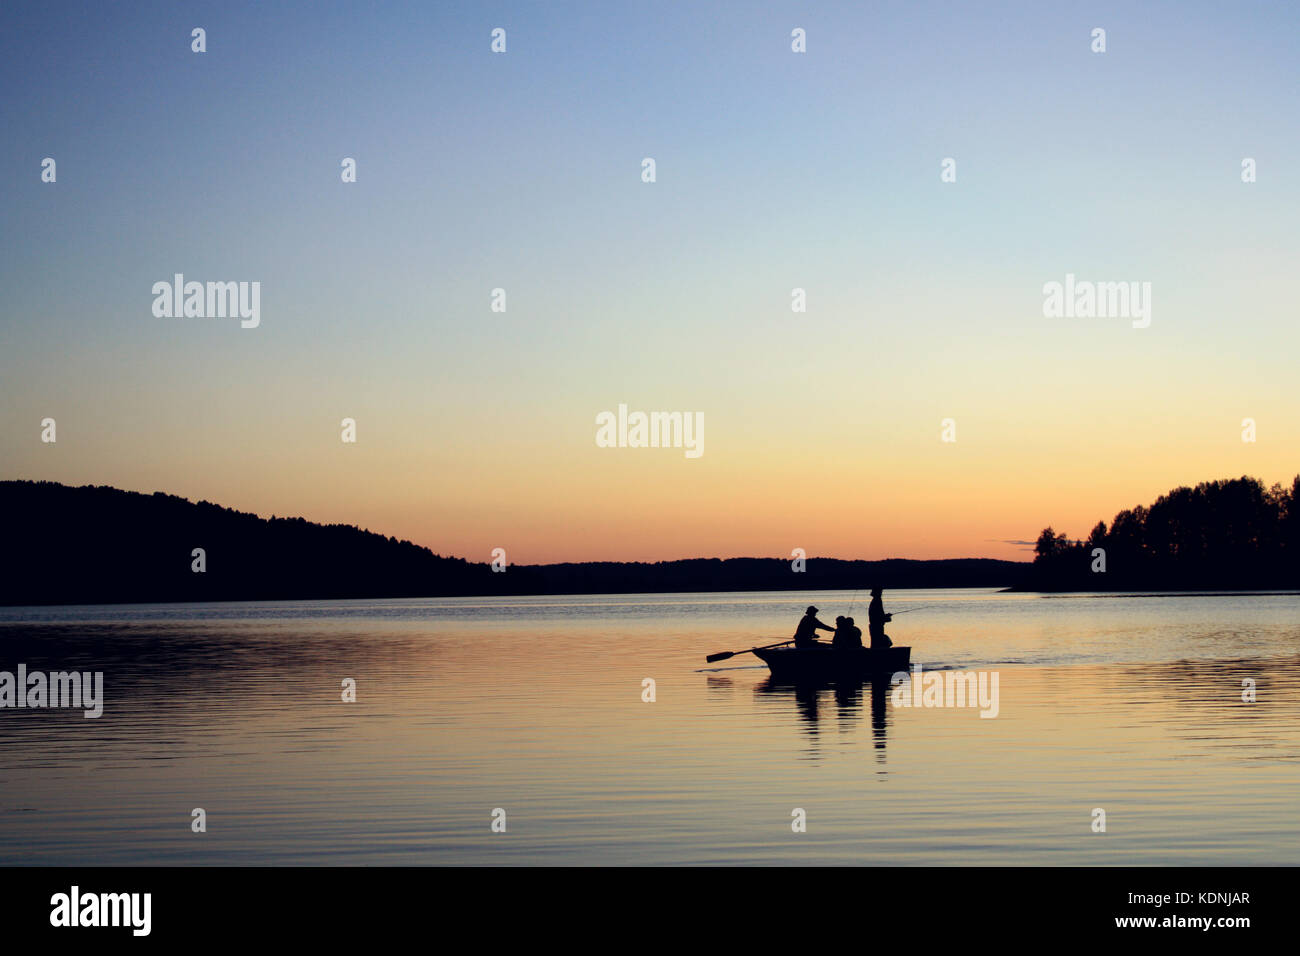 The Boat with fishermen. Sunset on the Kenozero lake. Late evening. White nights on the north of Russia. Peaceful - Stock Image